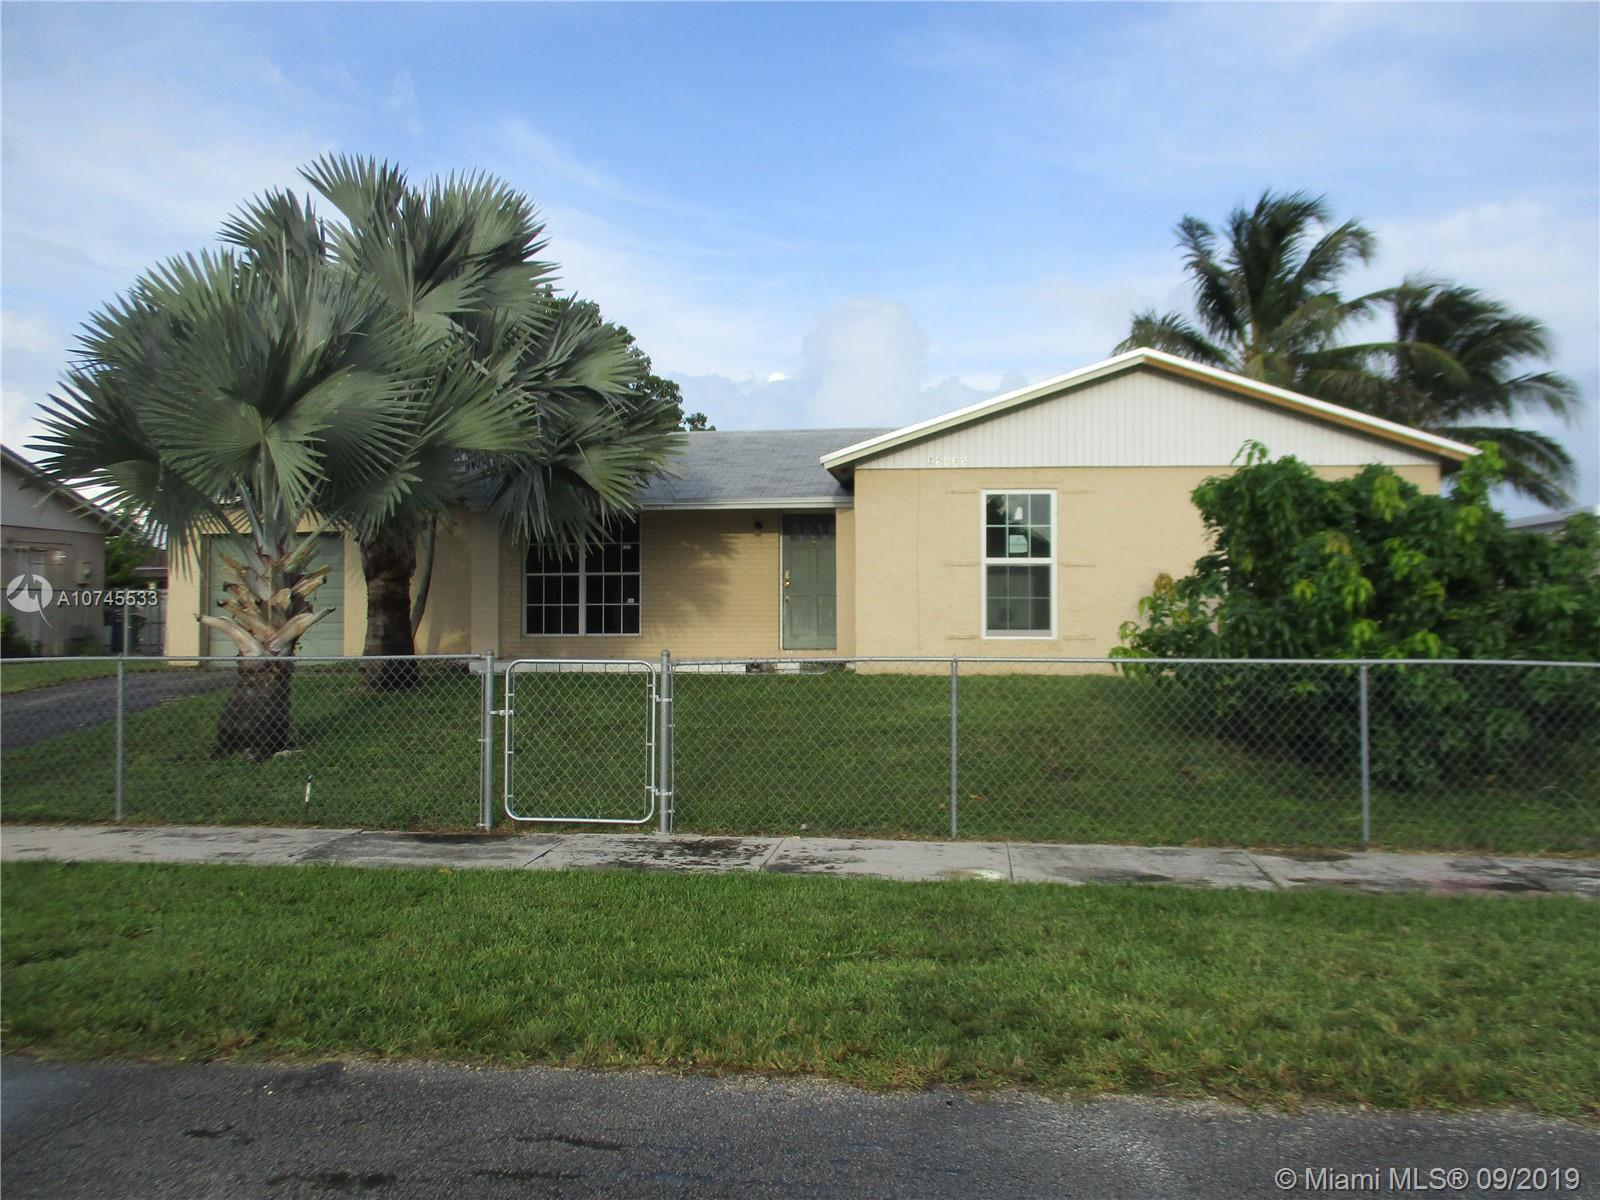 25835 SW 131st Ct, Homestead, FL 33032 - Homestead, FL real estate listing